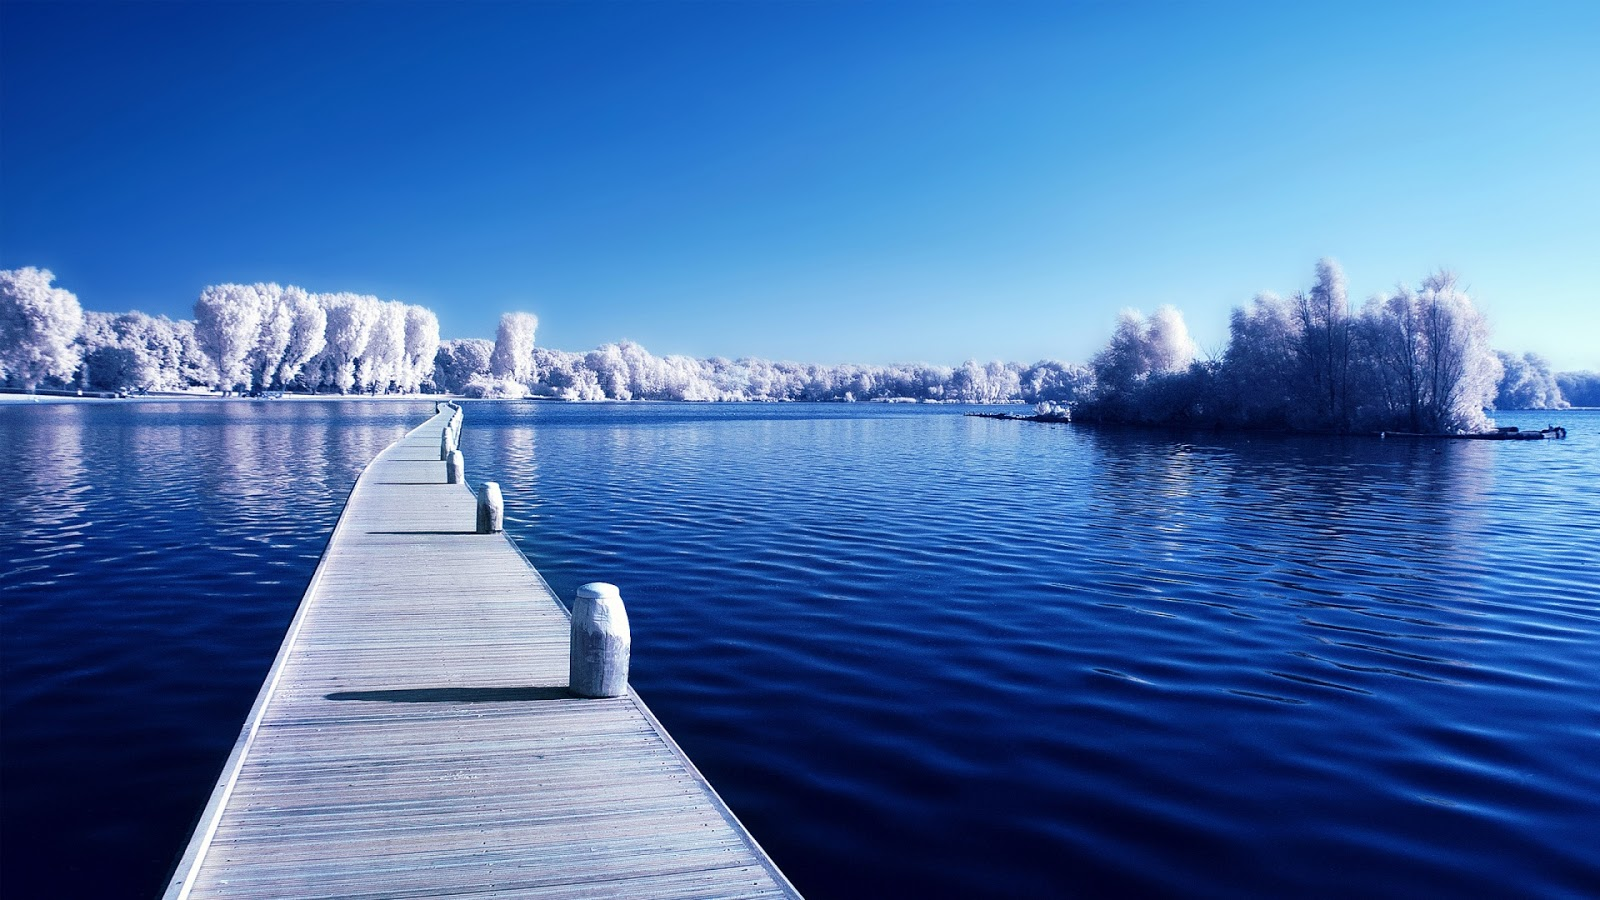 Perfect Winter 1920x1080 HD Android Wallpaper